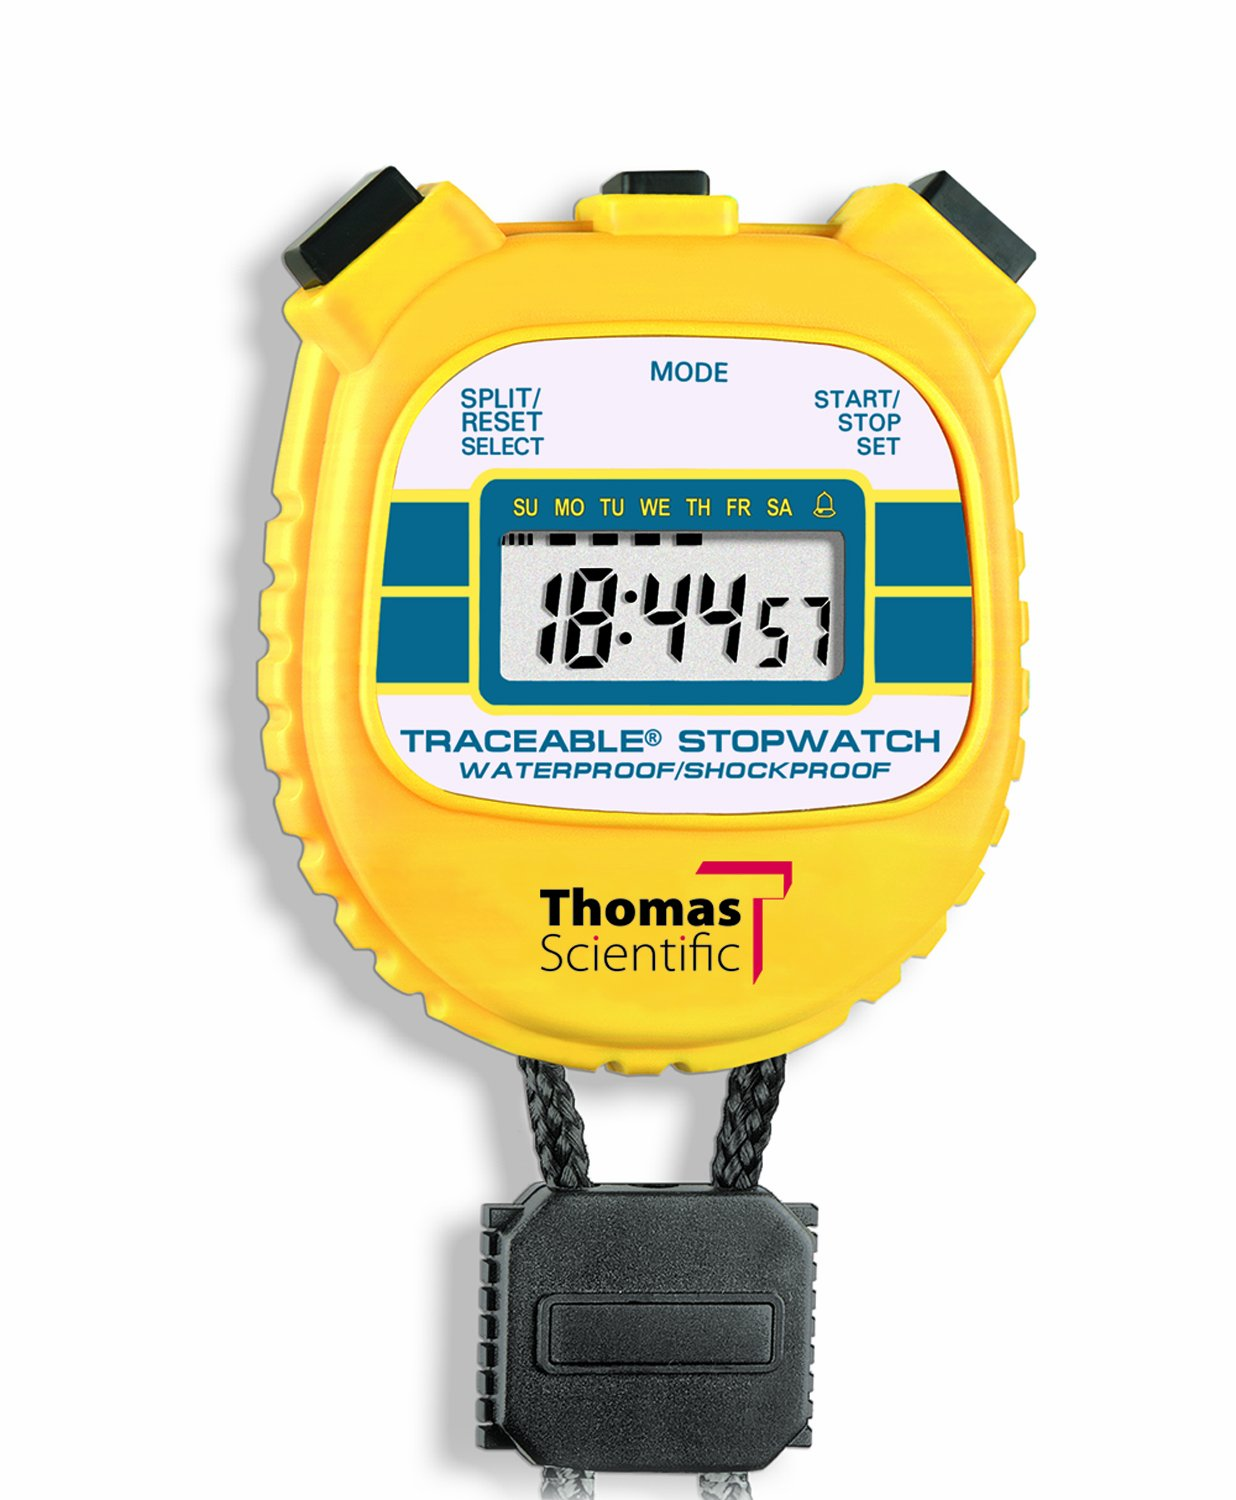 0.01 percent Accuracy Thomas 1042 Traceable ABS Plastic Shockproof and Waterproof Stopwatch with LCD Display 2-3//8 Length x 2-1//8 Width x 1//2 Thick 2-3//8 Length x 2-1//8 Width x 1//2 Thick Thomas Scientific